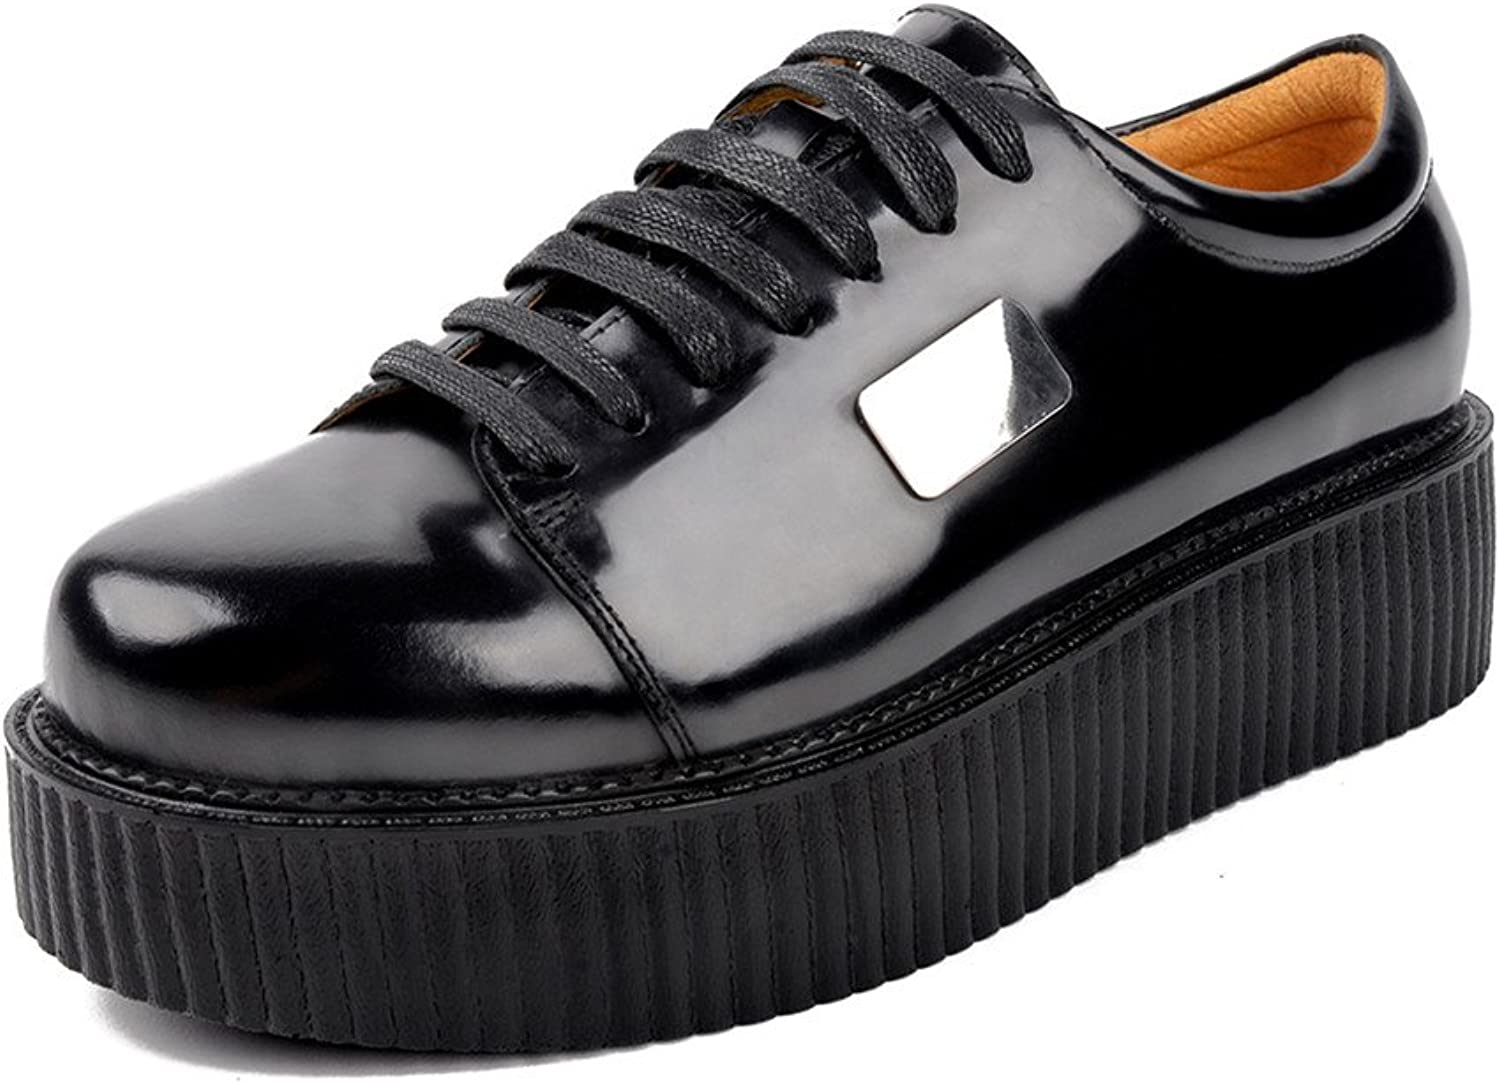 pinkG Men's Leather Oxfords Flat Platform Lace-up Punk Creepers shoes